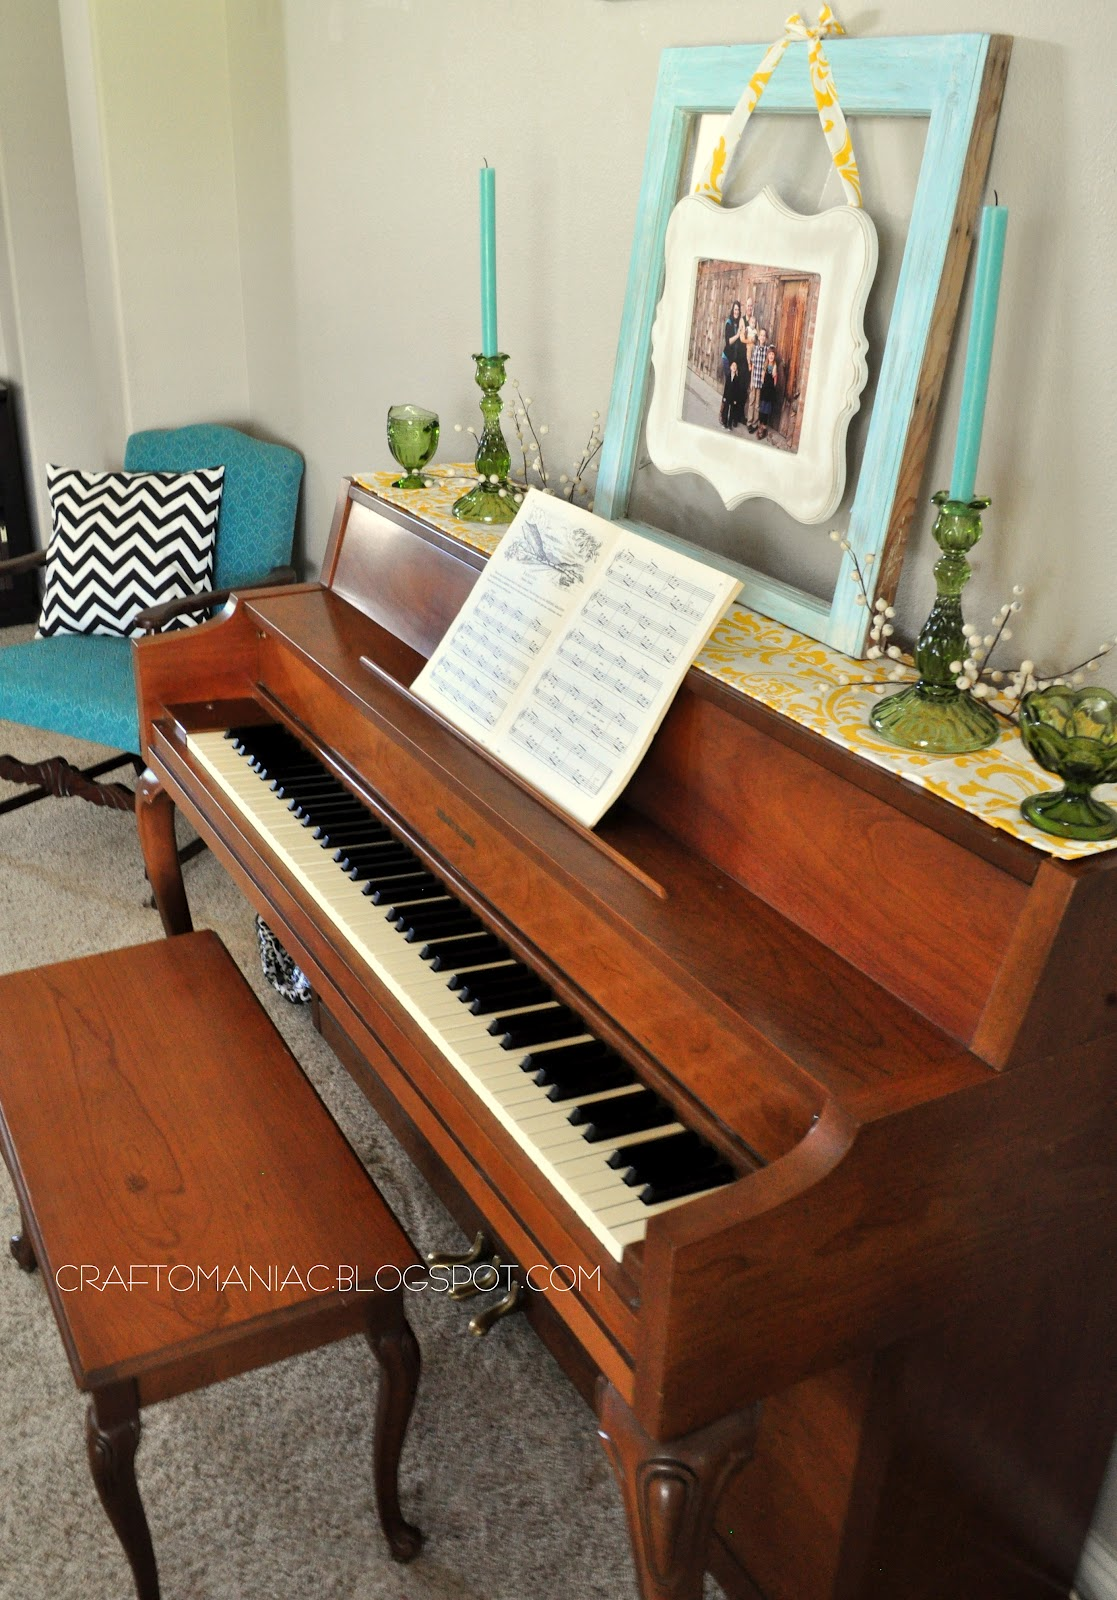 Best Home Decor With A Simple Diy Piano Top Runner Craft O Maniac This Month